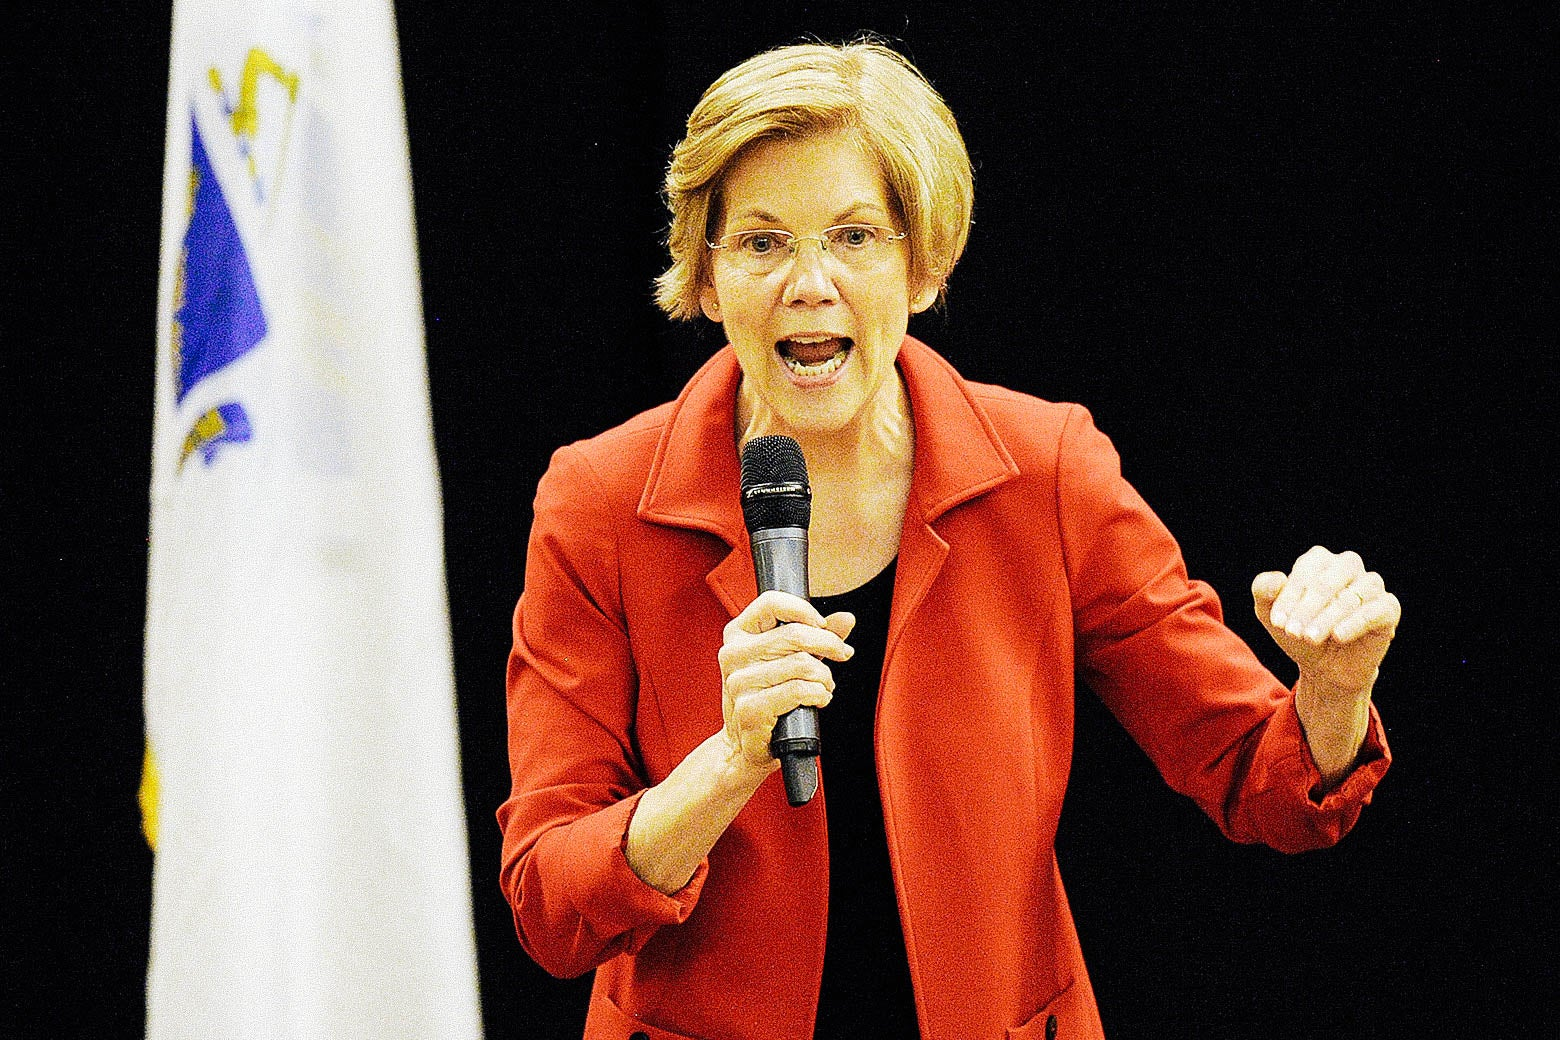 Elizabeth Warren speaks into a microphone.